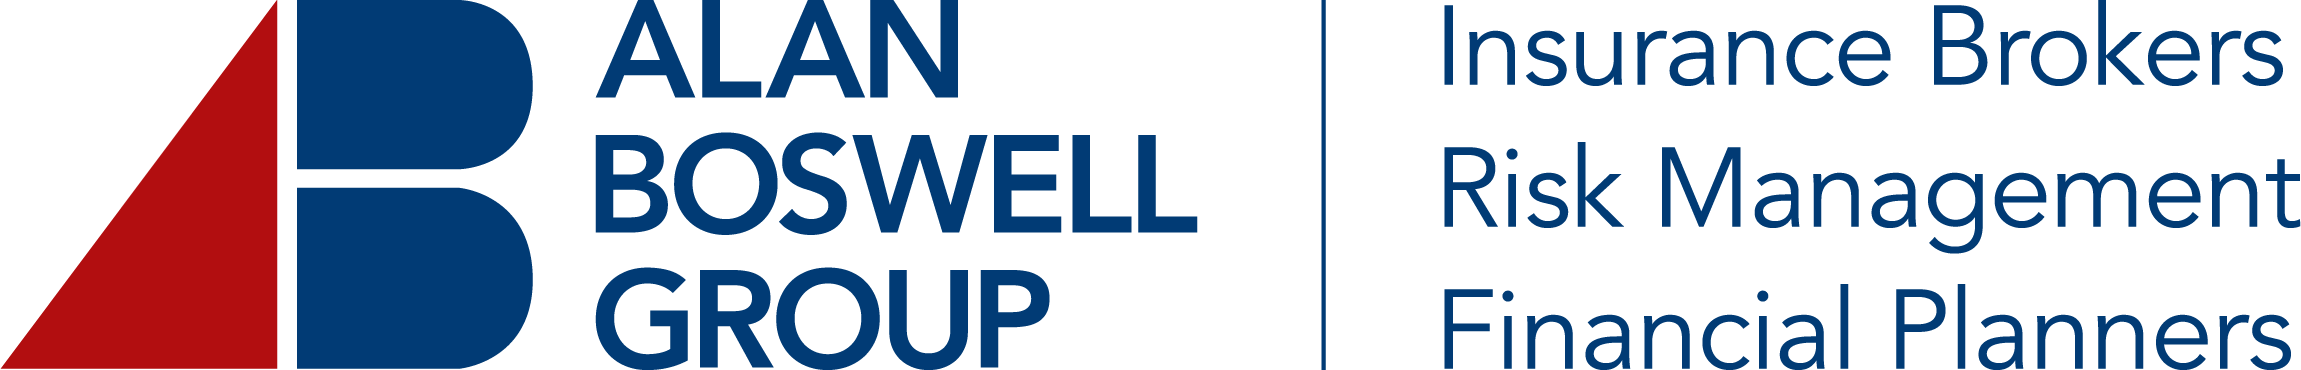 Alan Boswell Group logo with tag